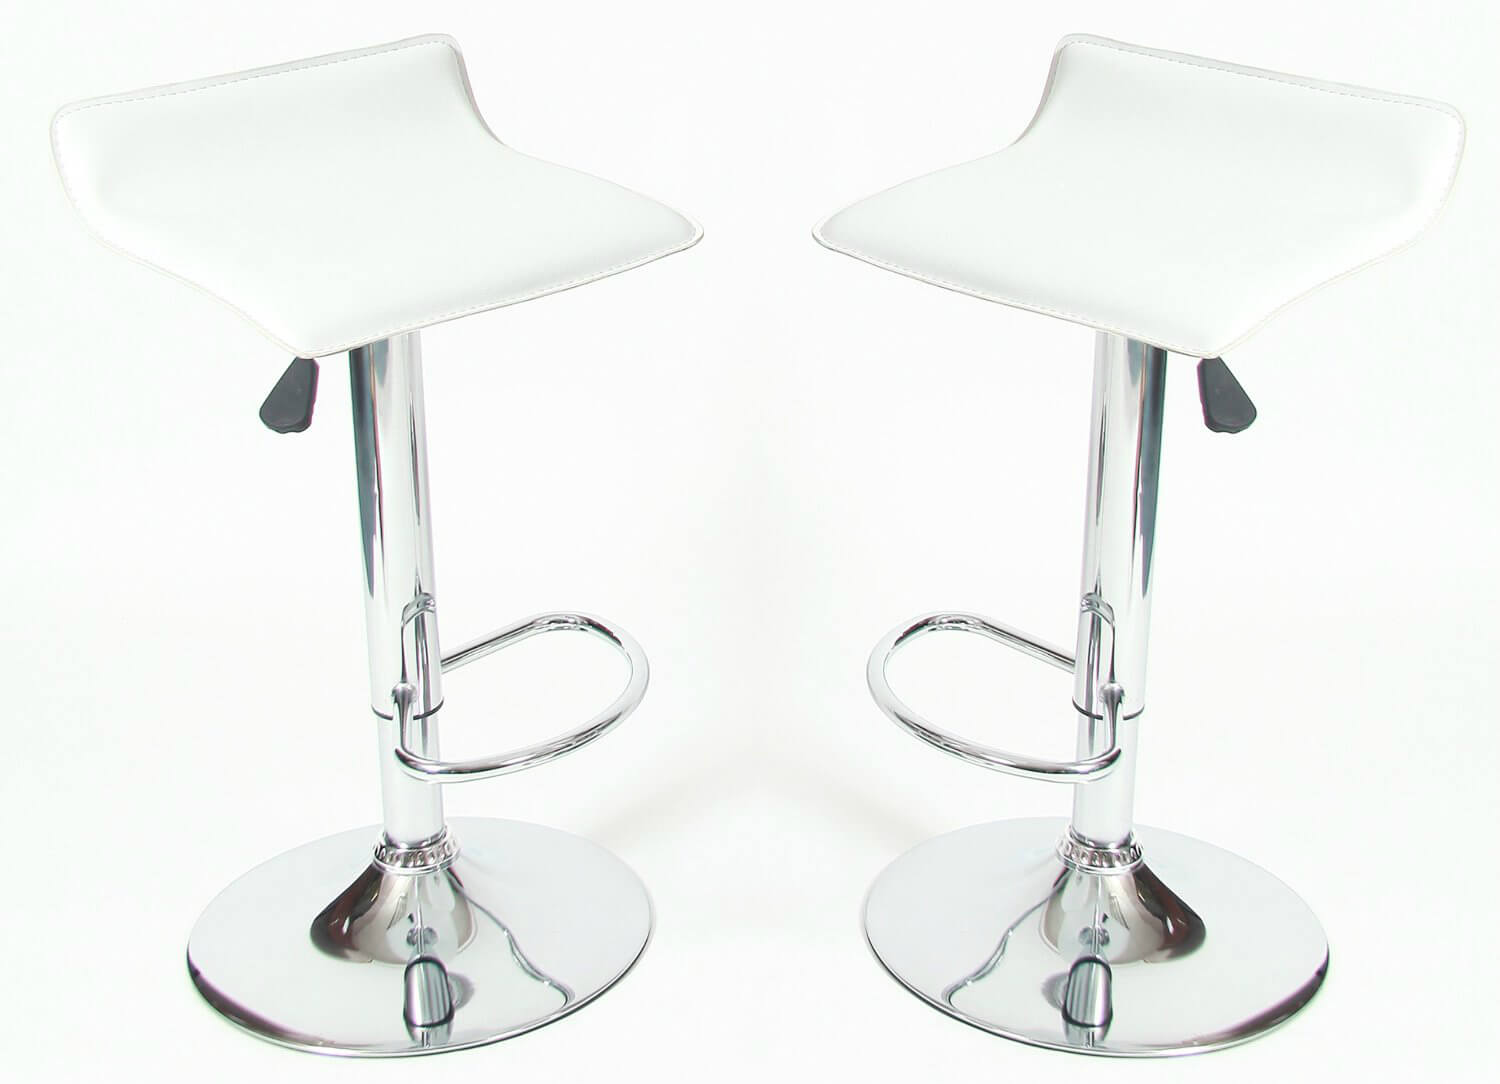 This is a low back modern stool design with a chrome base and white faux leather upholstered seat. The stool adjusts from 24 to 30 inches and also swivels.